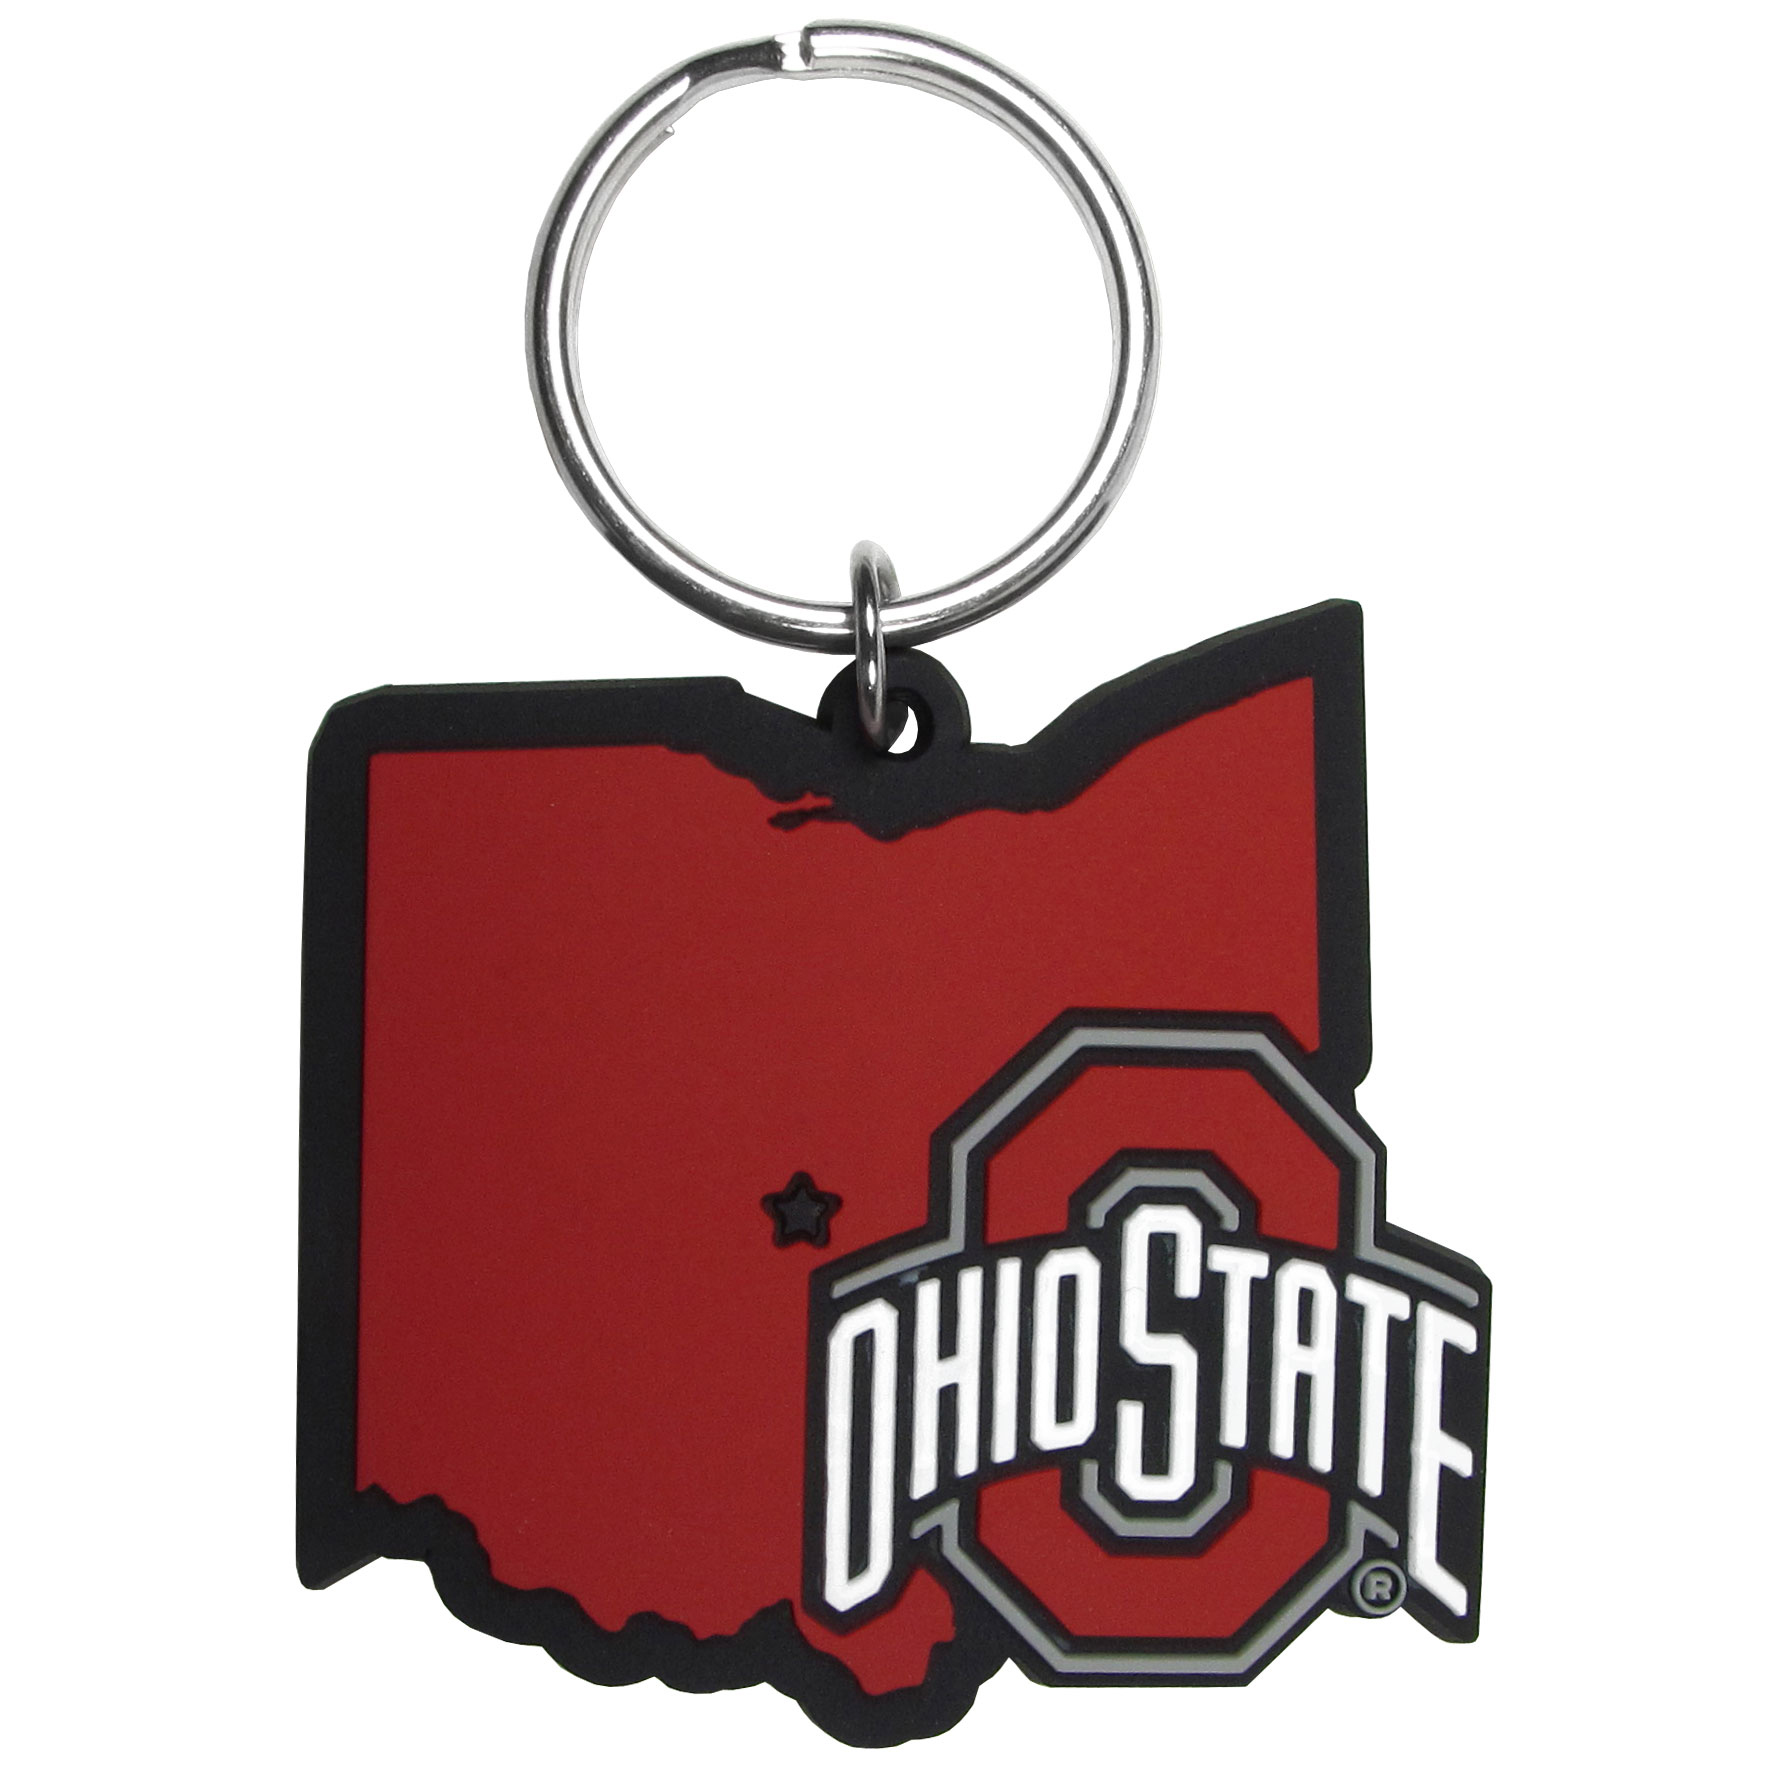 Ohio St. Buckeyes Home State Flexi Key Chain - Our flexible Ohio St. Buckeyes key chains are a fun way to carry your team with you. The pliable rubber material is extremely durable and the layered colors add a great 3D look to the key chain. This is really where quality and a great price meet to create a true fan favorite.